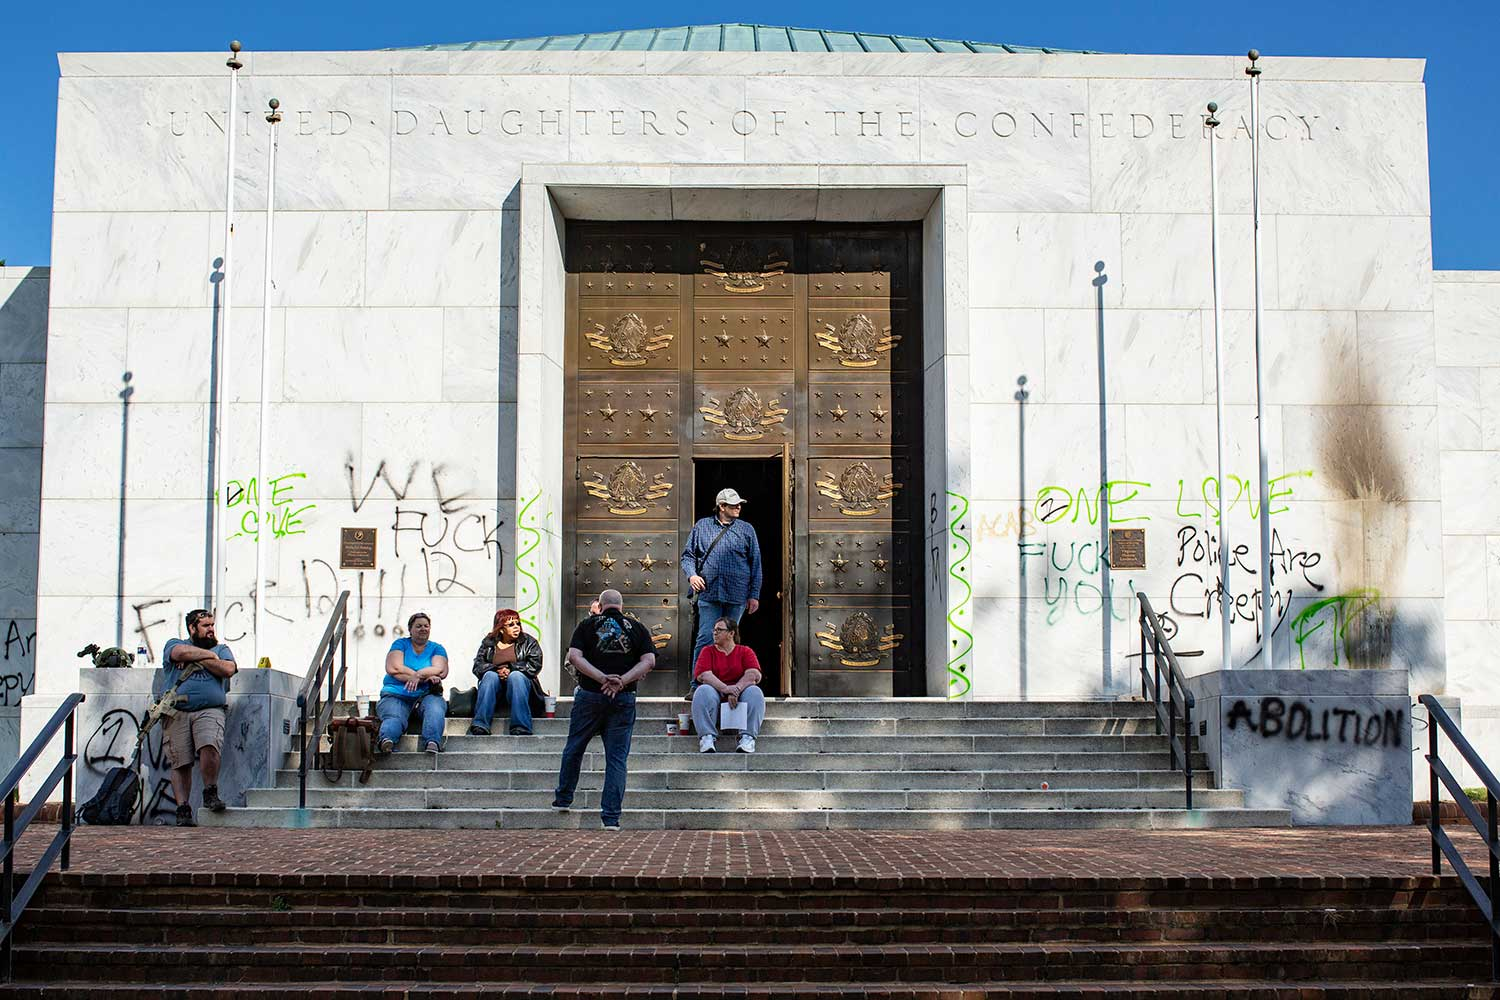 People sit and stand on the steps of the United Daughters of the Confederacy headquarters. The building is tagged with anti-police graffiti.